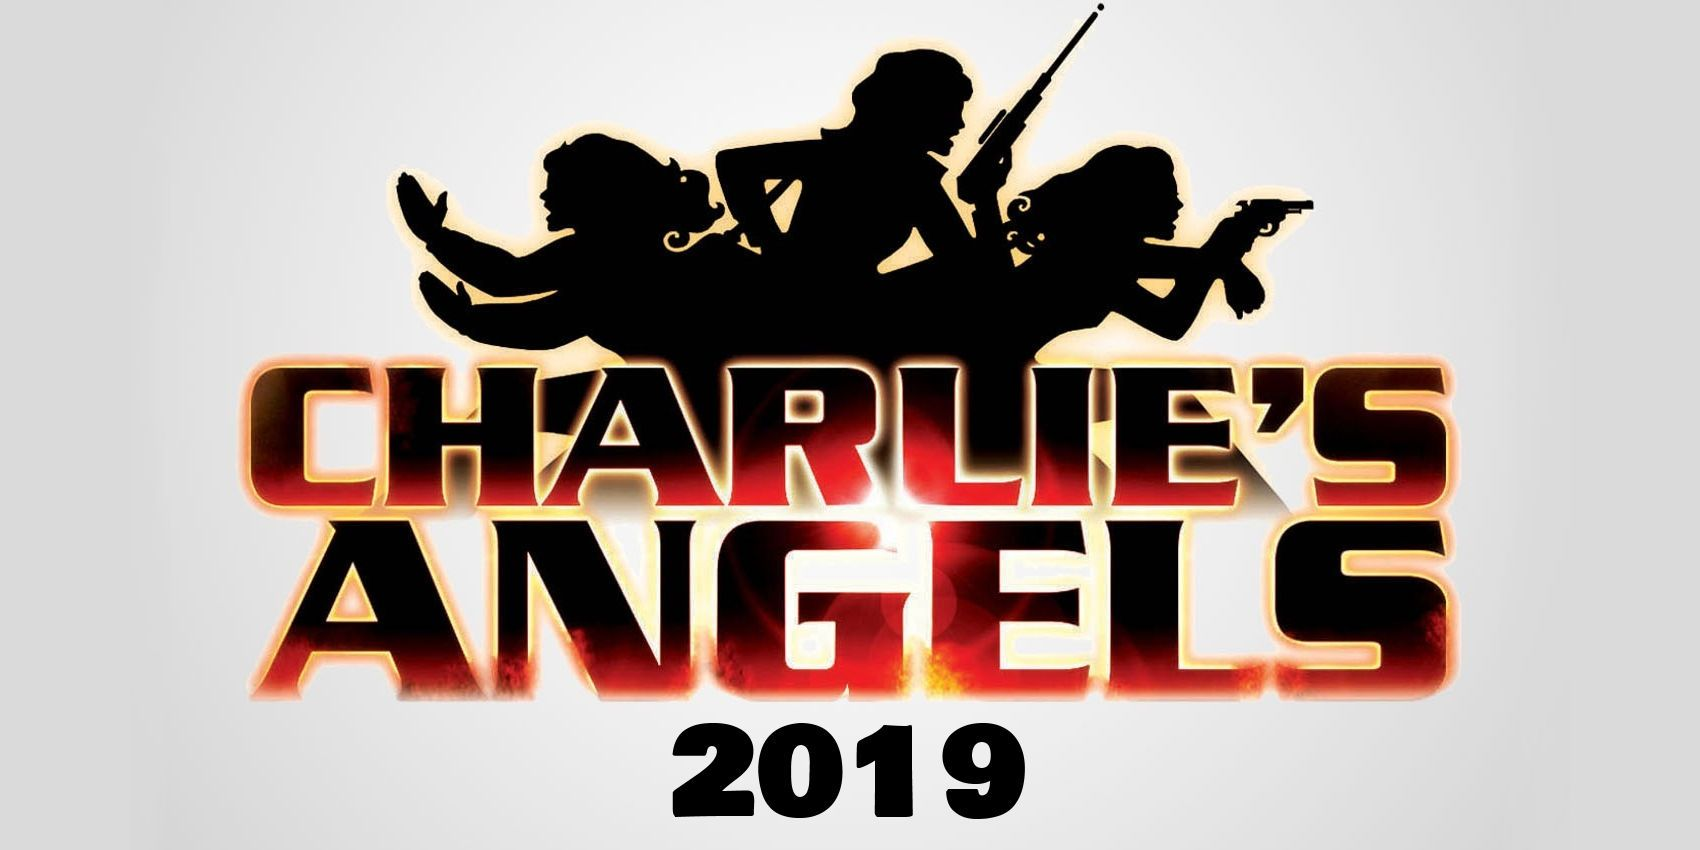 Charlie's Angels Reboot Photo Offers First Look at New Team